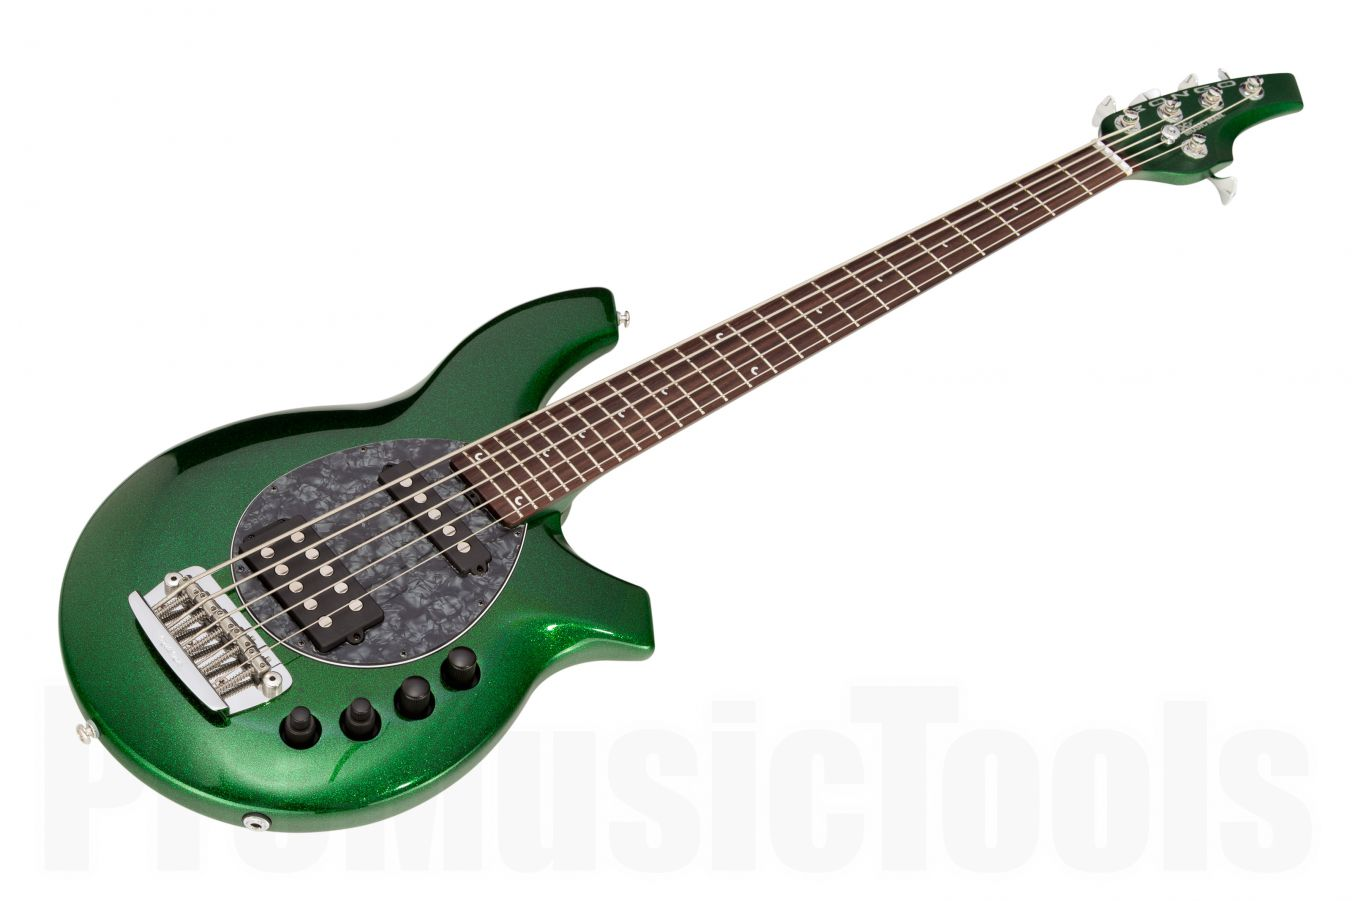 Music Man USA Bongo 5 HS ES - PDN Emerald Green Sparkle Limited Edition